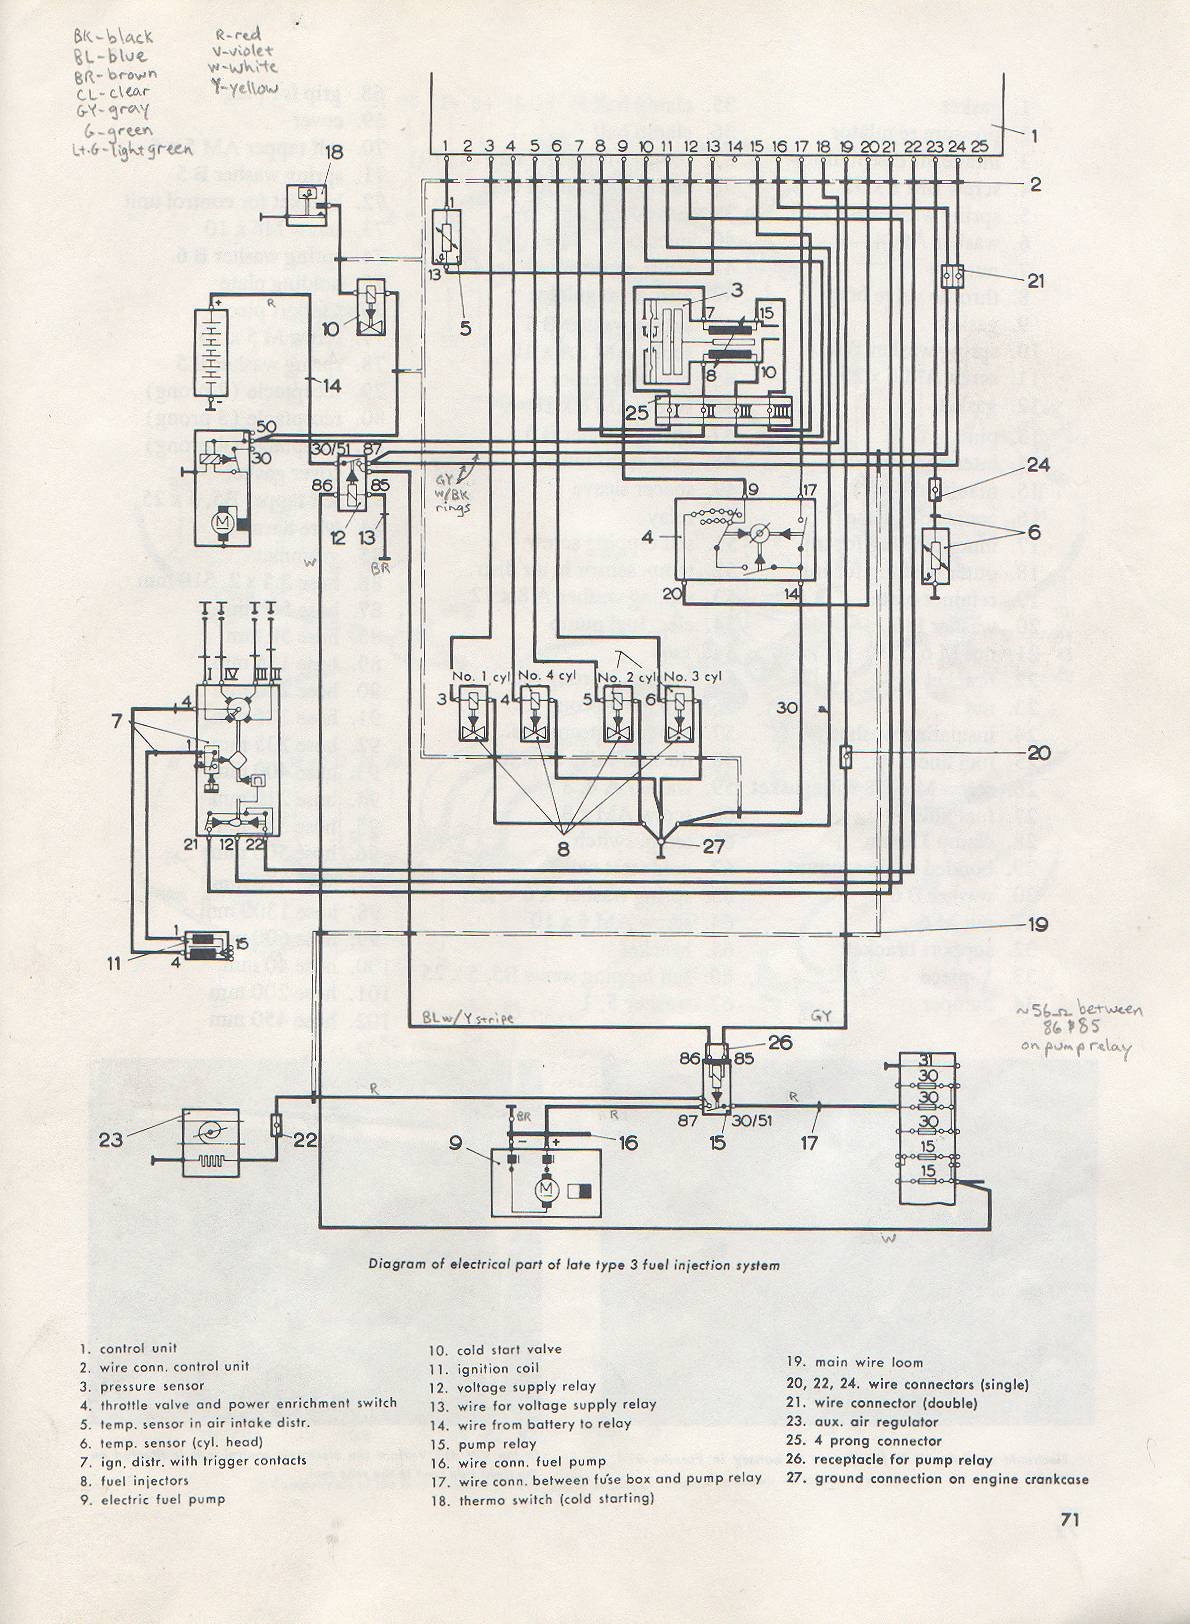 Type 3 Tuning Page Fuel Injection 8 Valve Switch Box Wire Diagram Information On 18l And 20l Components Was Not In The Manual Since Those Systems Came Out Later Troubleshooting